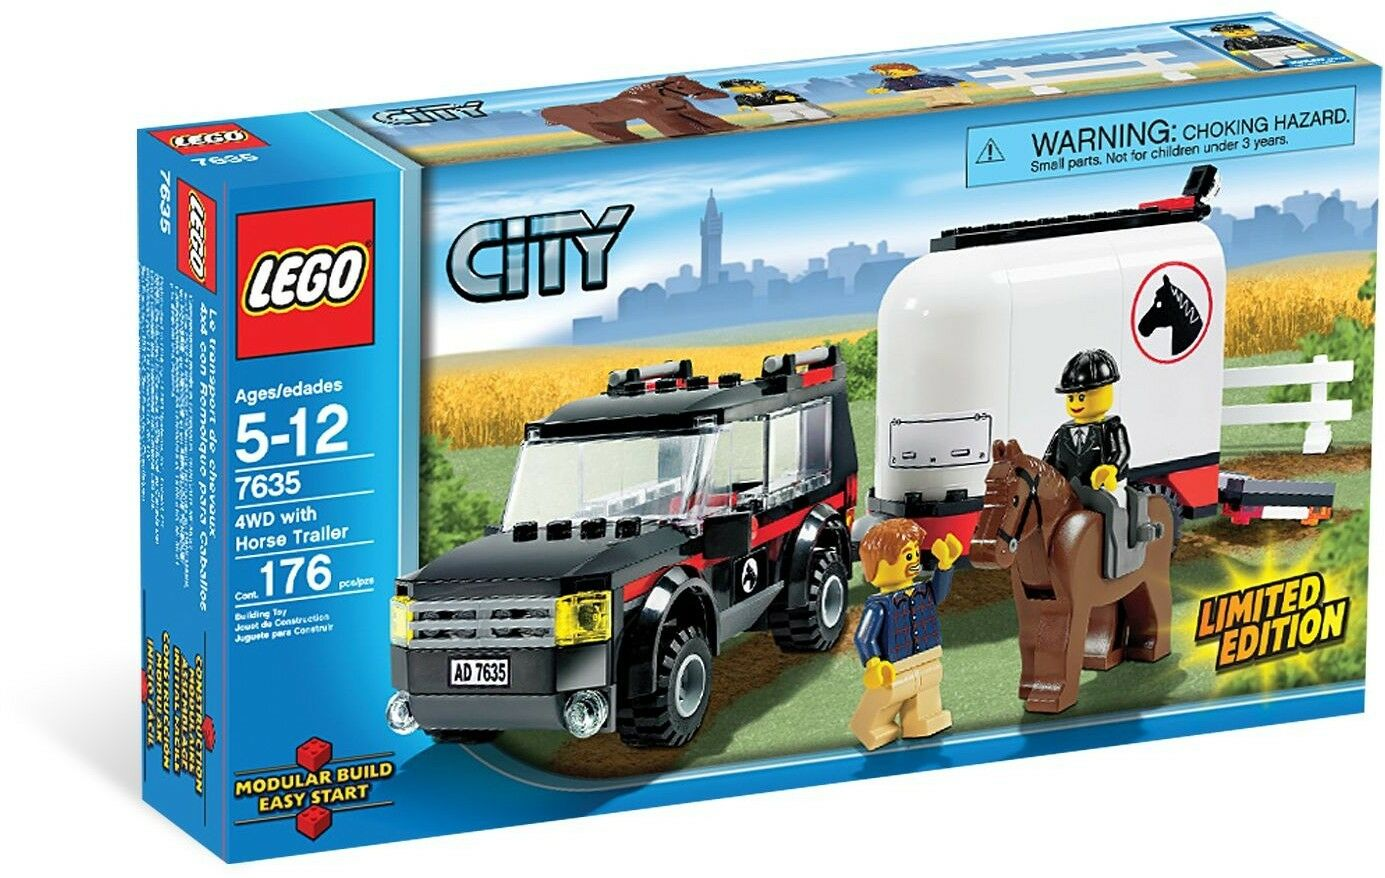 BRAND NEW Lego City FARM 4WD WITH HORSE TRAILER 7635